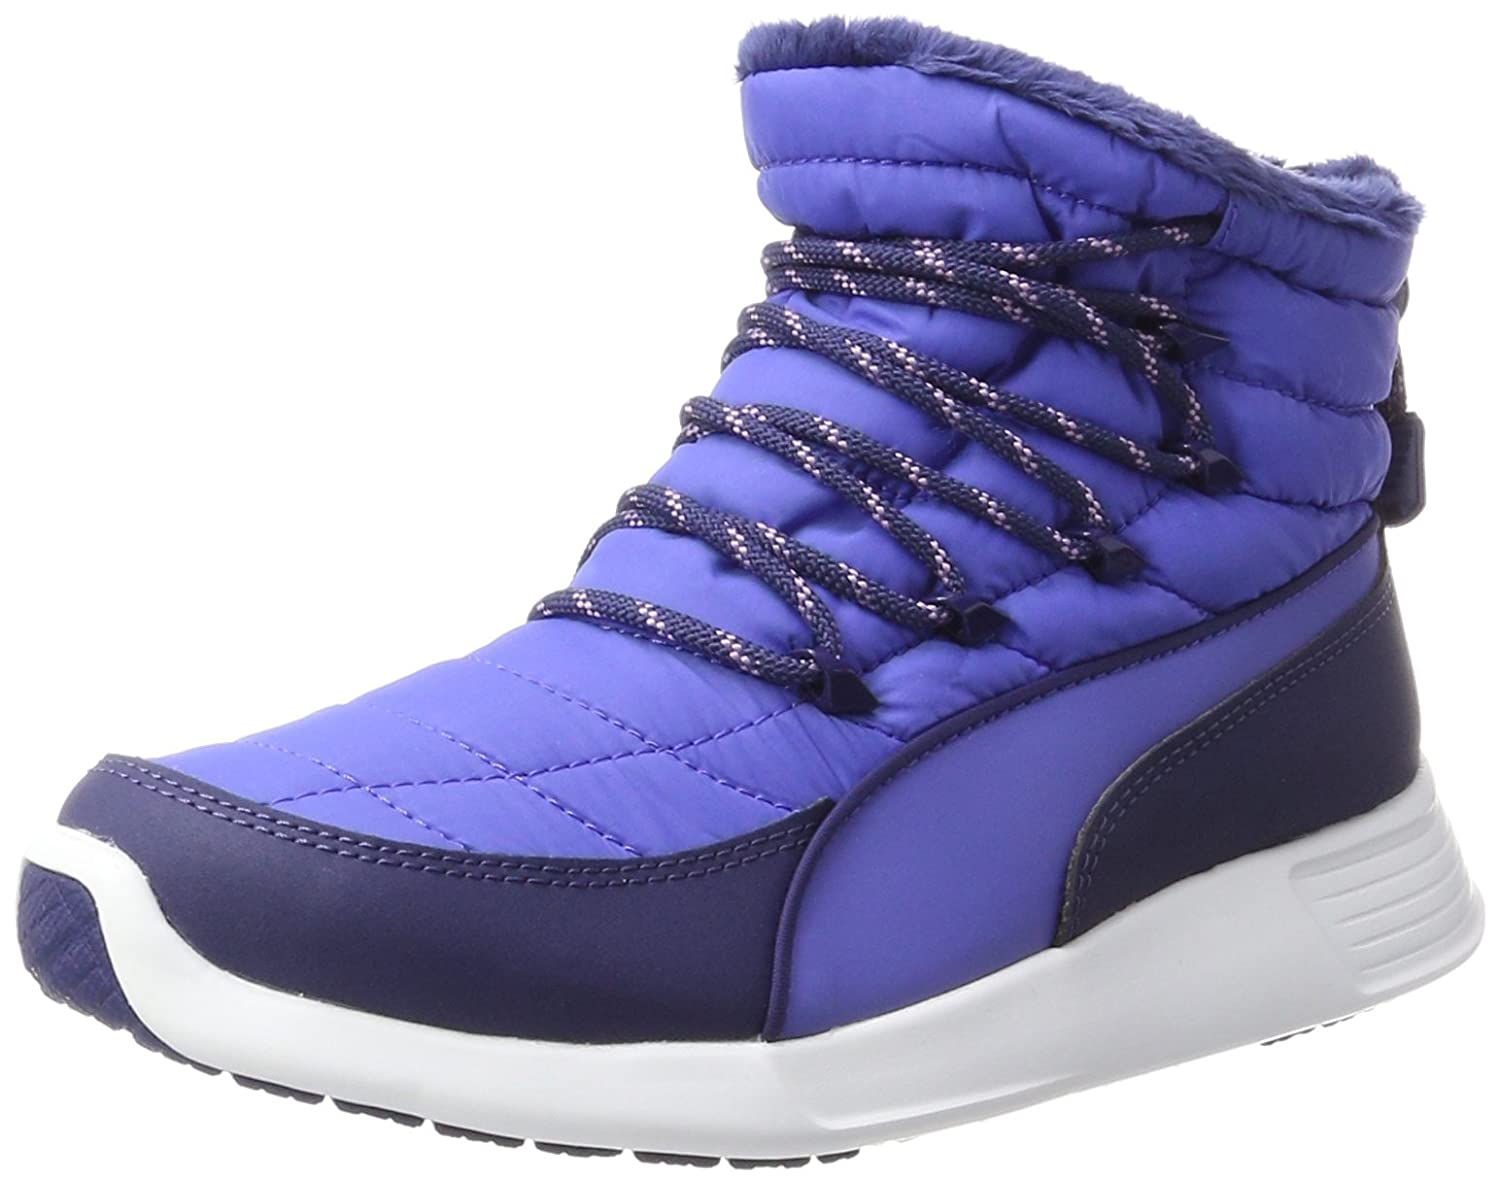 Puma Damen St Winter Boot Schneestiefel  38.5 EU|Blau (Baja Blue-blue Depths)